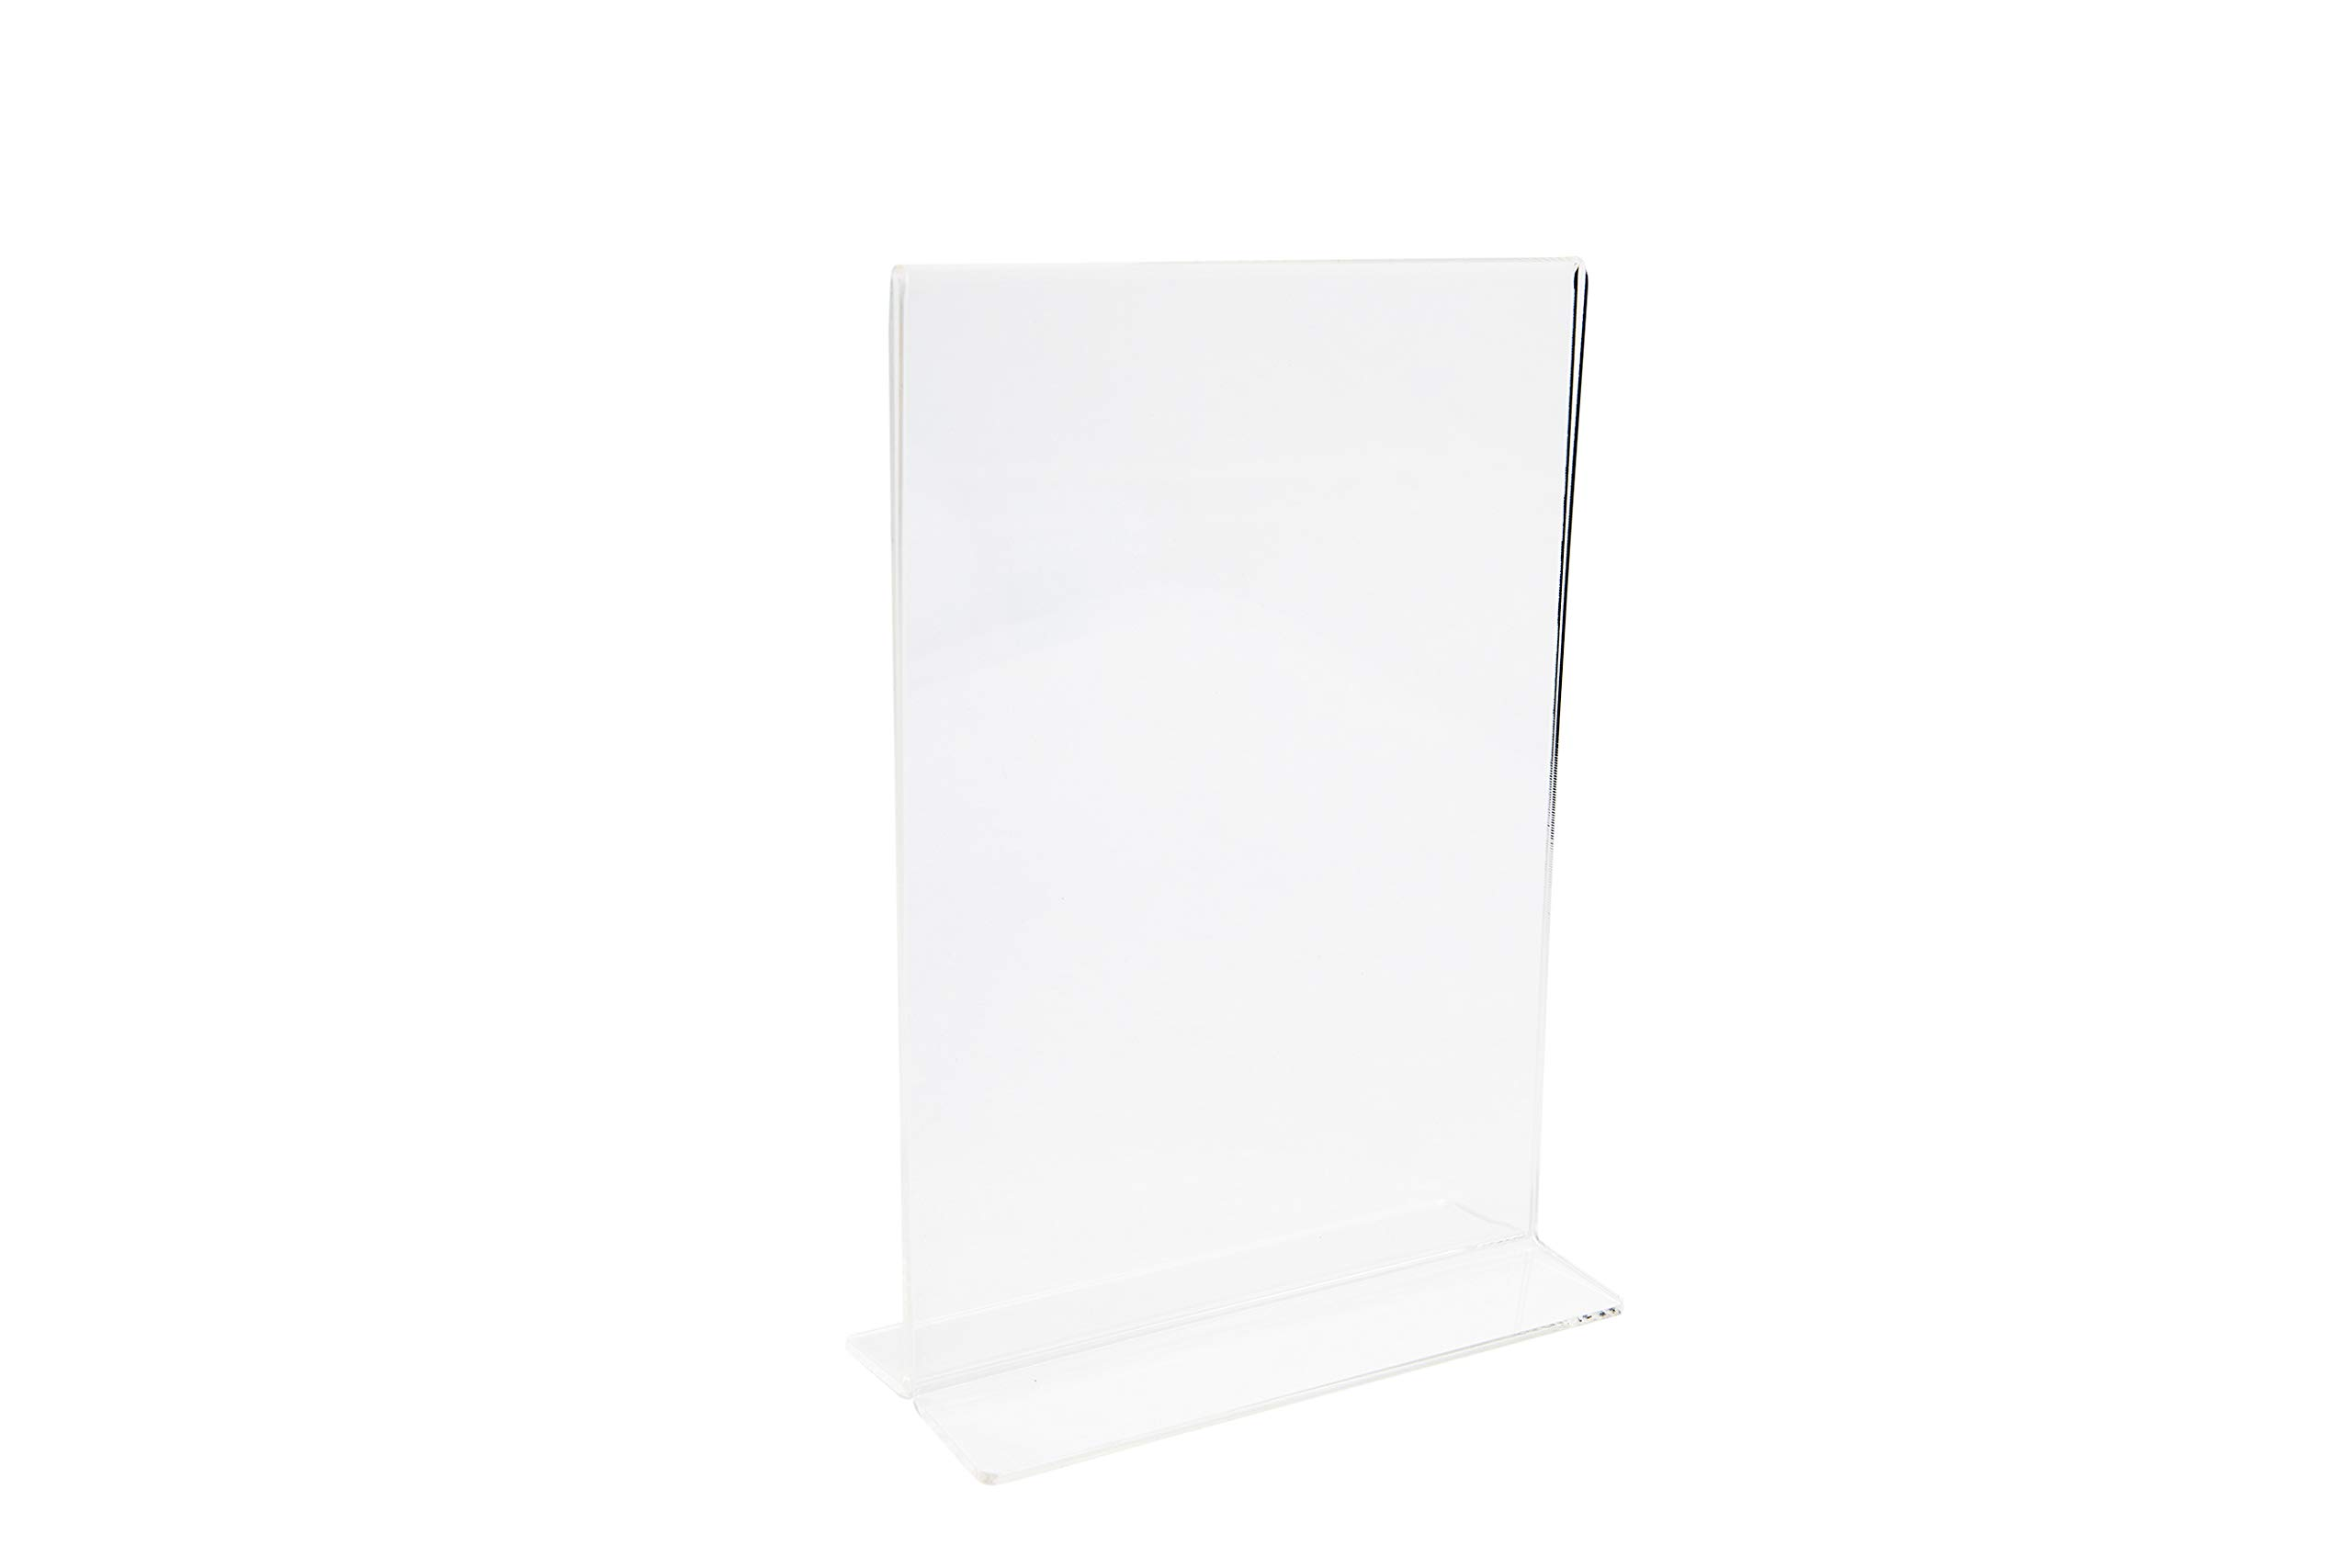 Premium Acrylic Sign Holder By Kala Concepts, Durable & Sturdy Construction, 5x7 Inches Display Area, Thick Top Grade Acrylic Material, Easy Change Of Inserts, Ultra Clear Wipe Clean Holder, 6 Pack